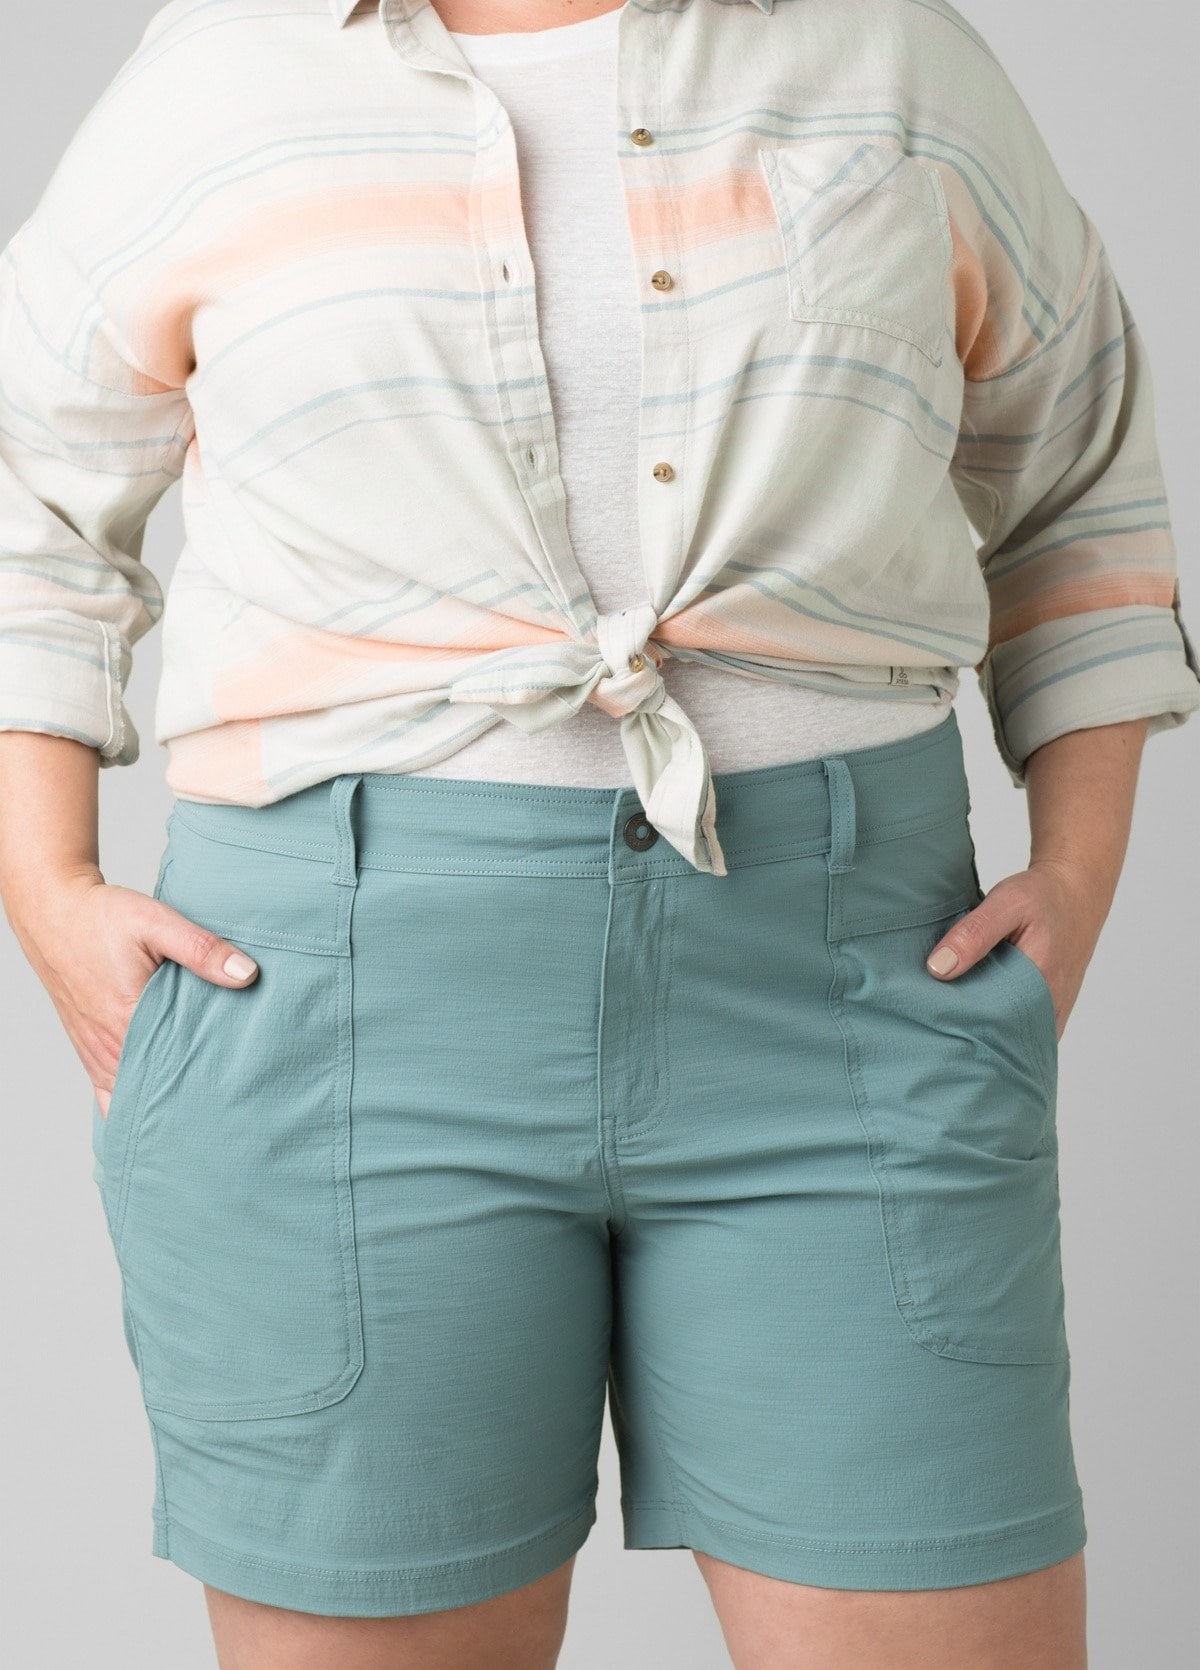 model in teal mid-thigh length shorts with large pockets